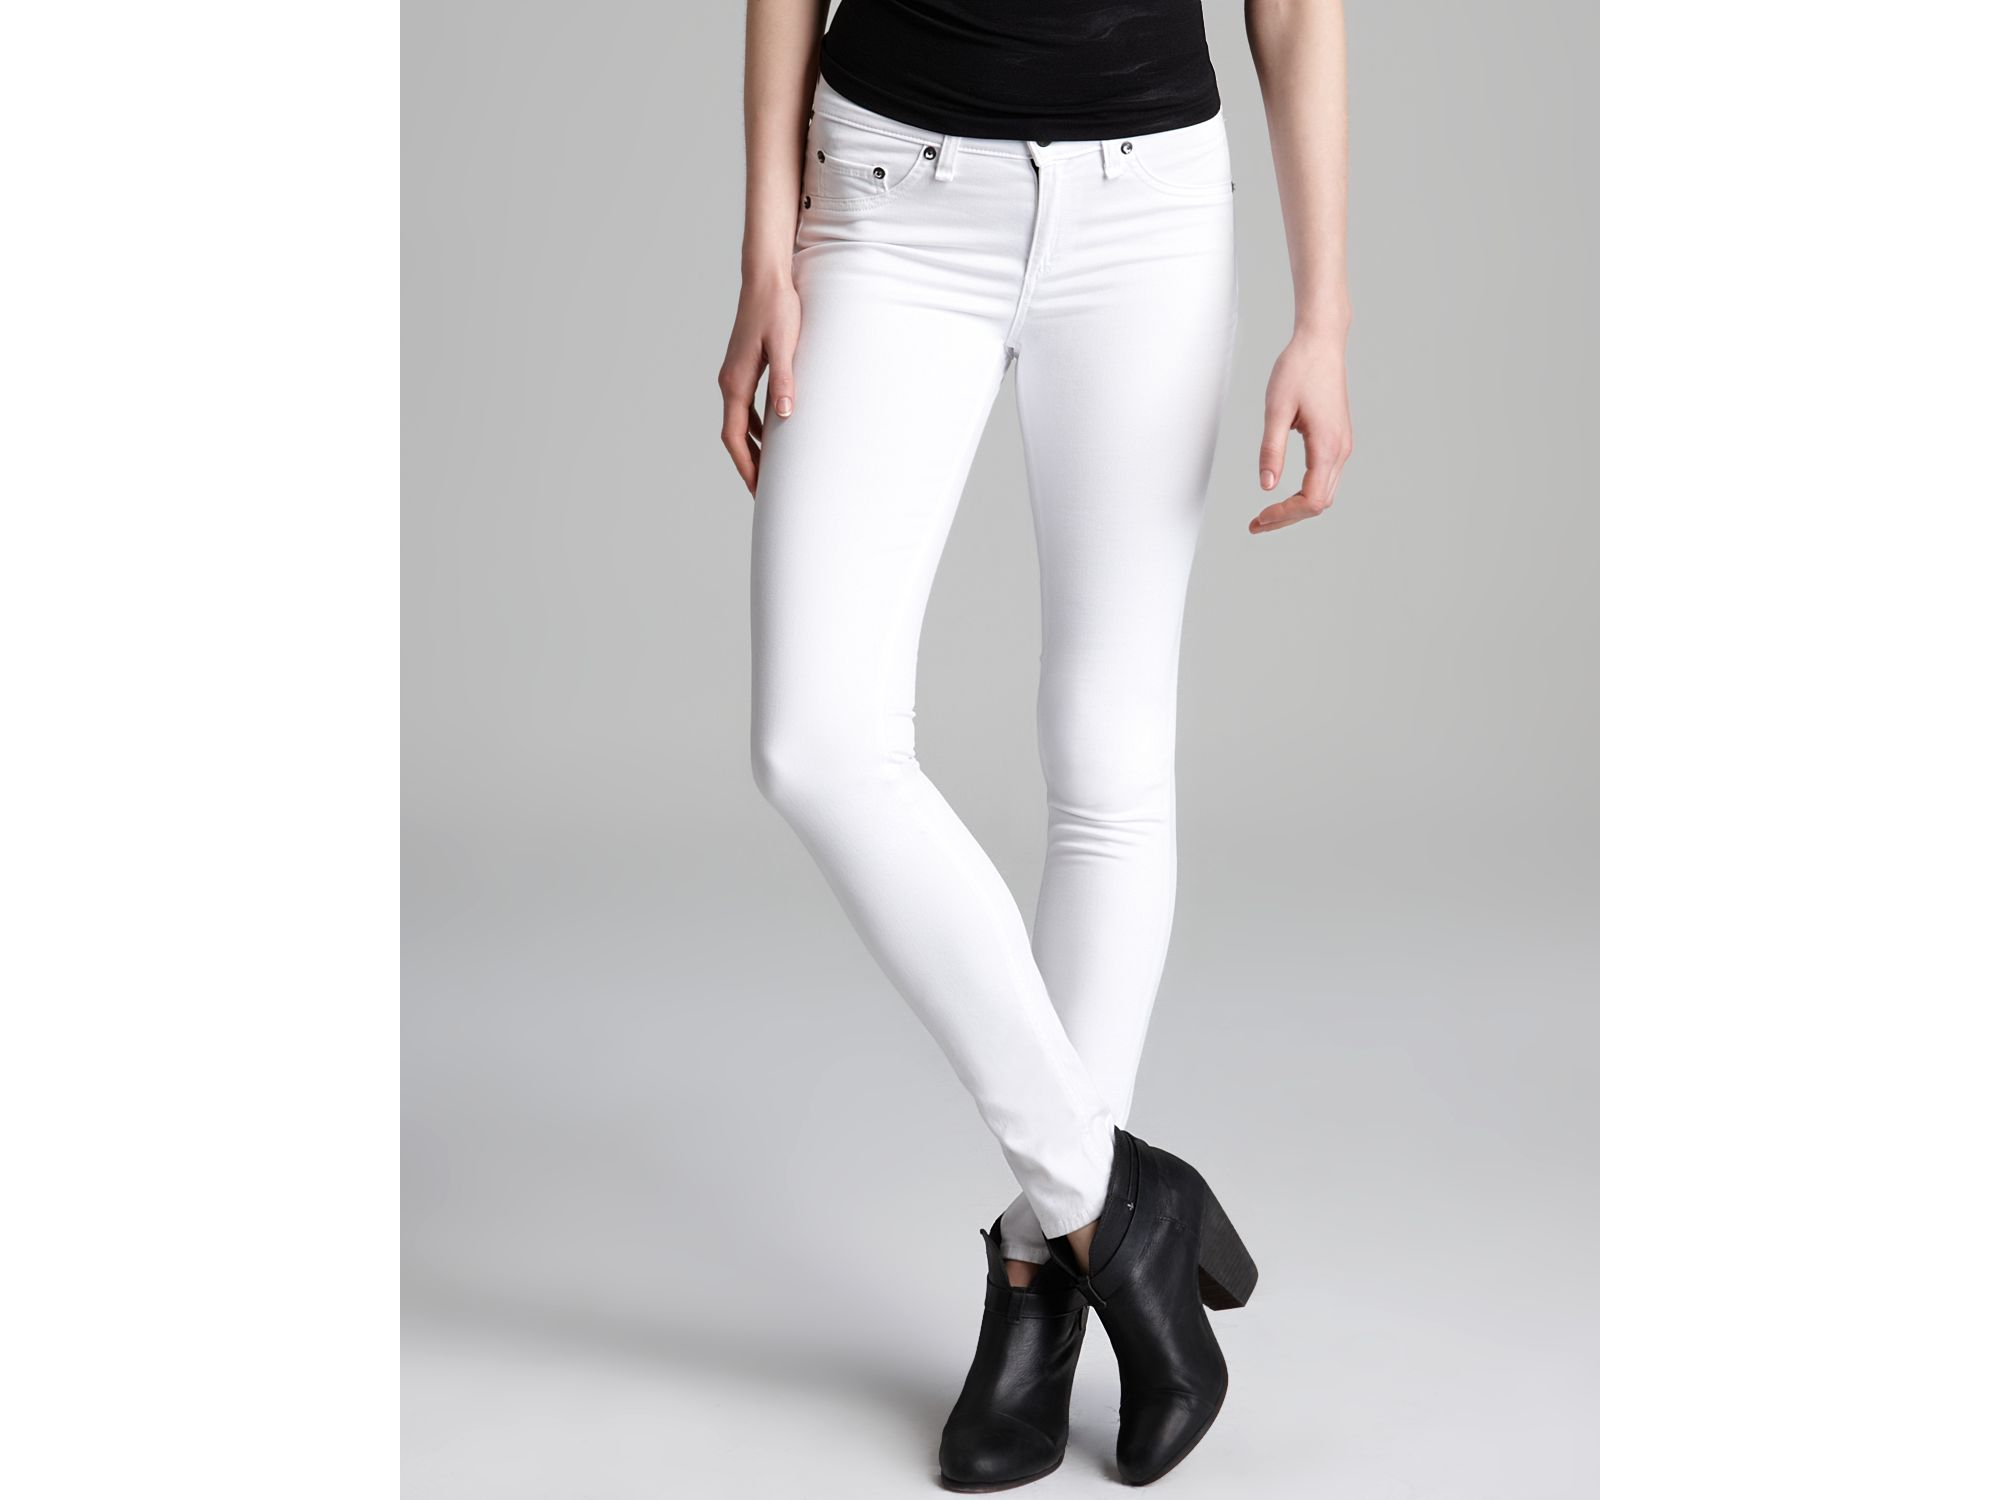 0665d920574376 Details about RAG & BONE Bright acne WHITE skinny Jean denim Pants LEGGINGS  frame 26